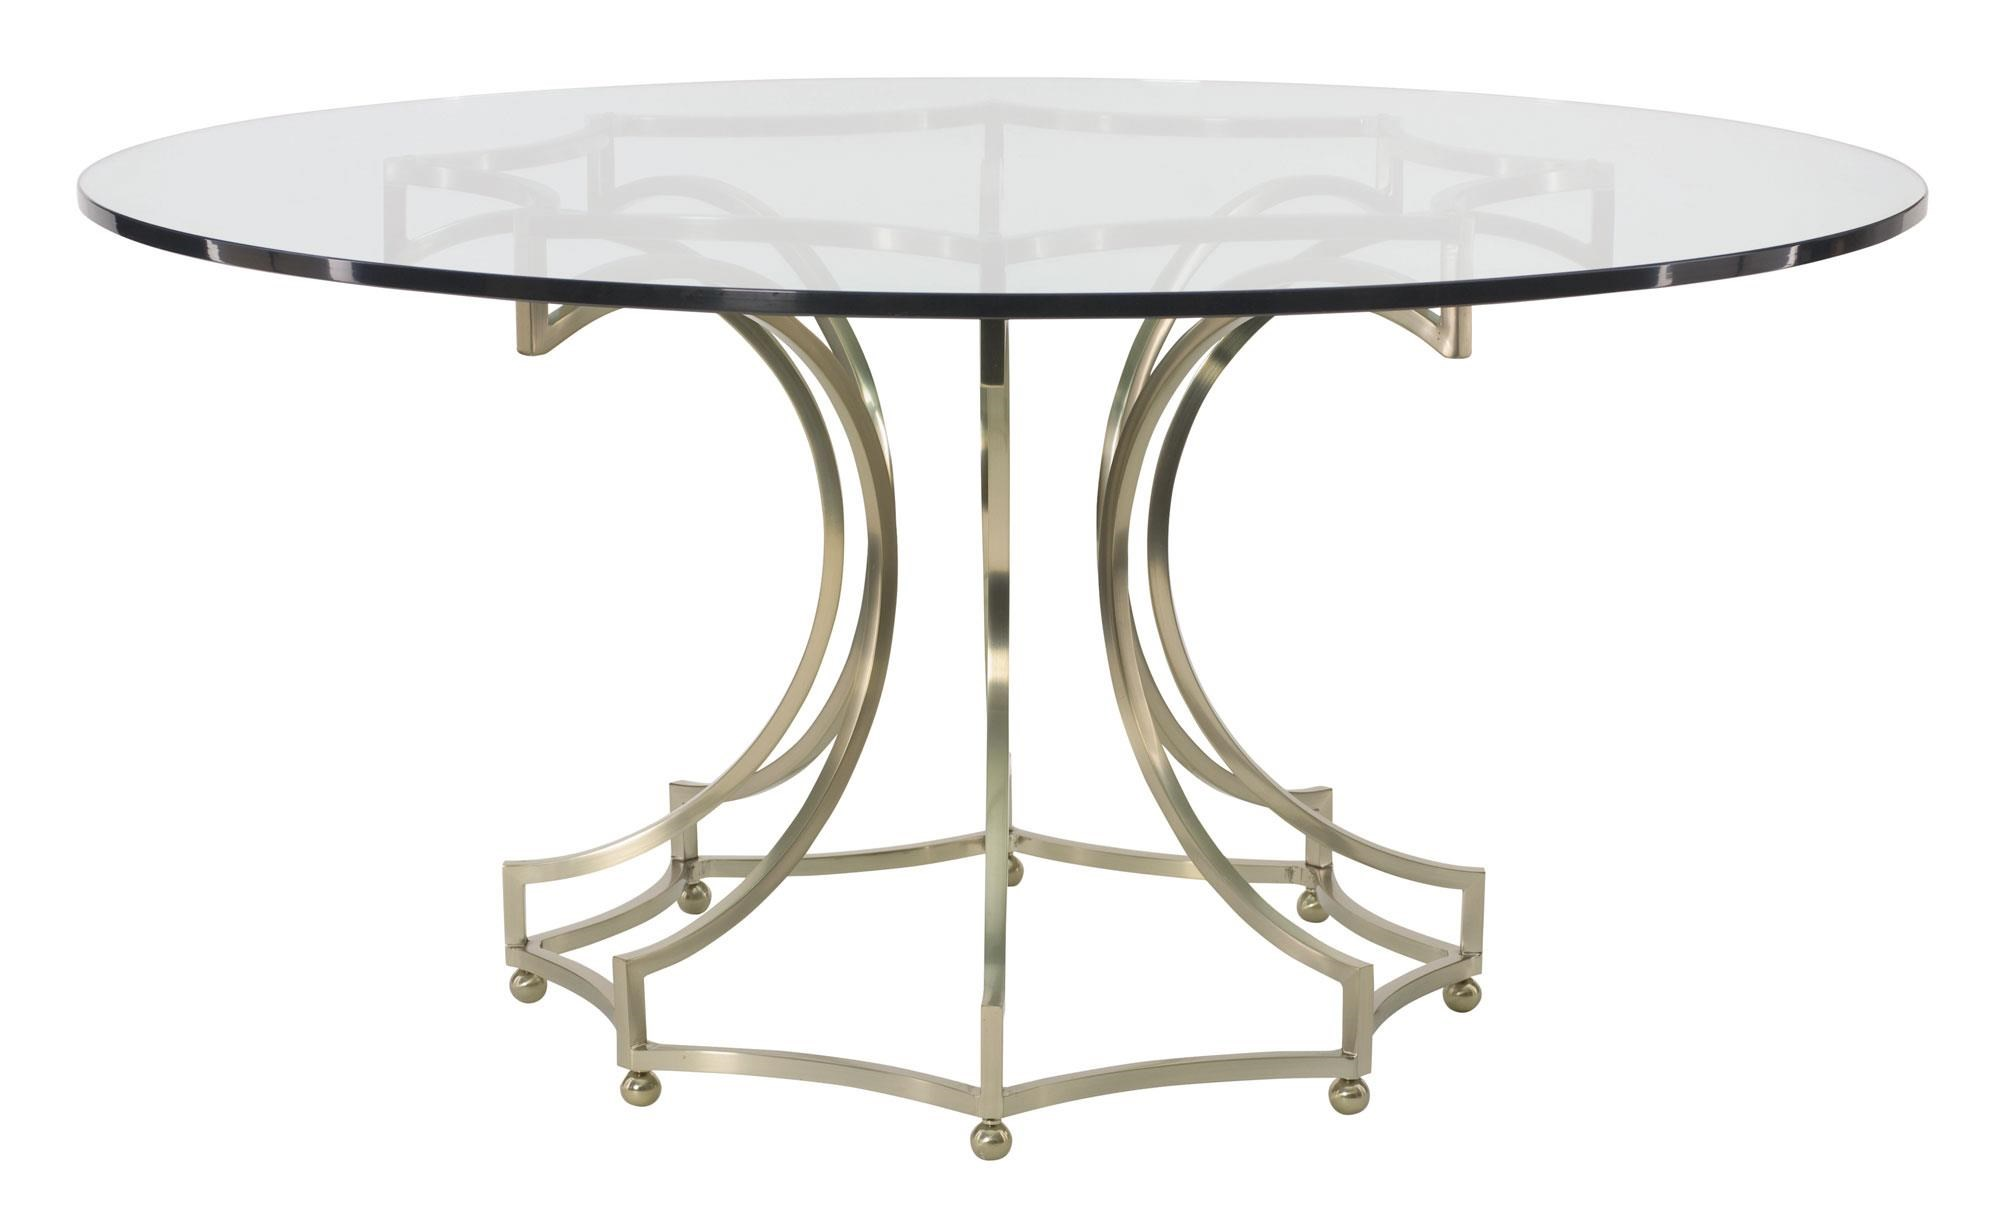 Bernhardt MiramontRound Dining Table